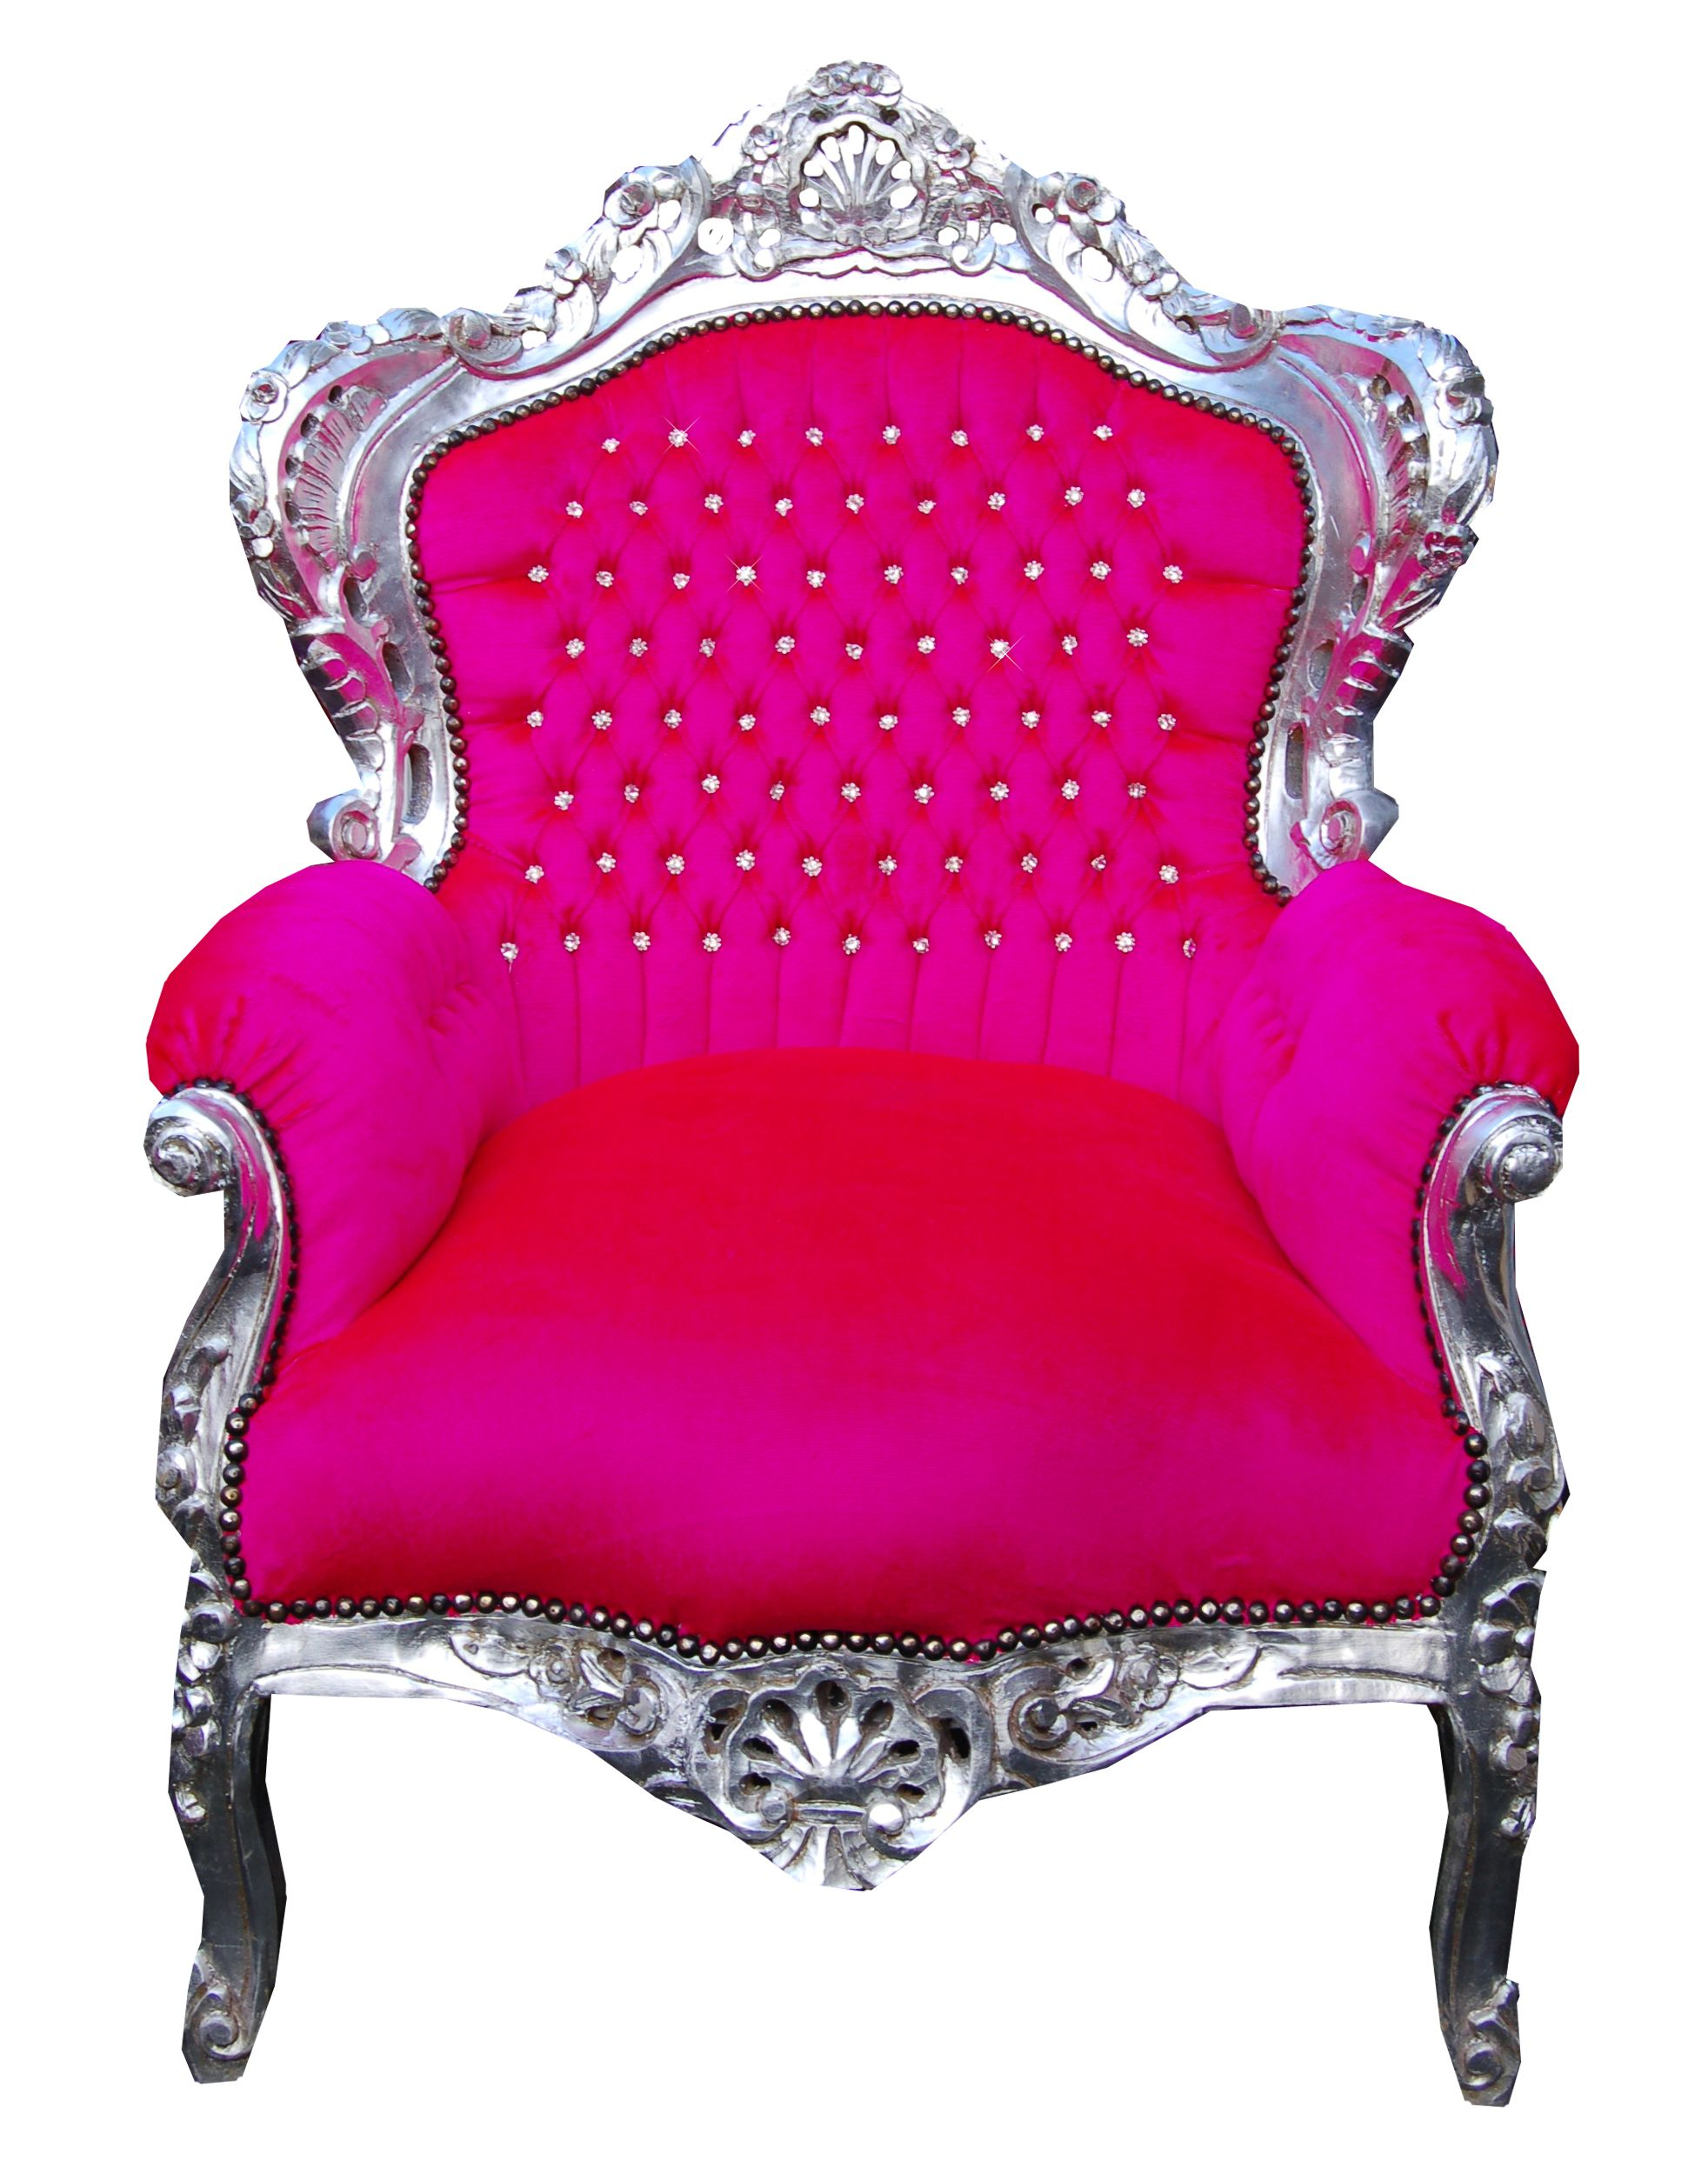 Antique princess chair - Vintage Style Shabby Chic French Hot Pink Throne Chair Princess